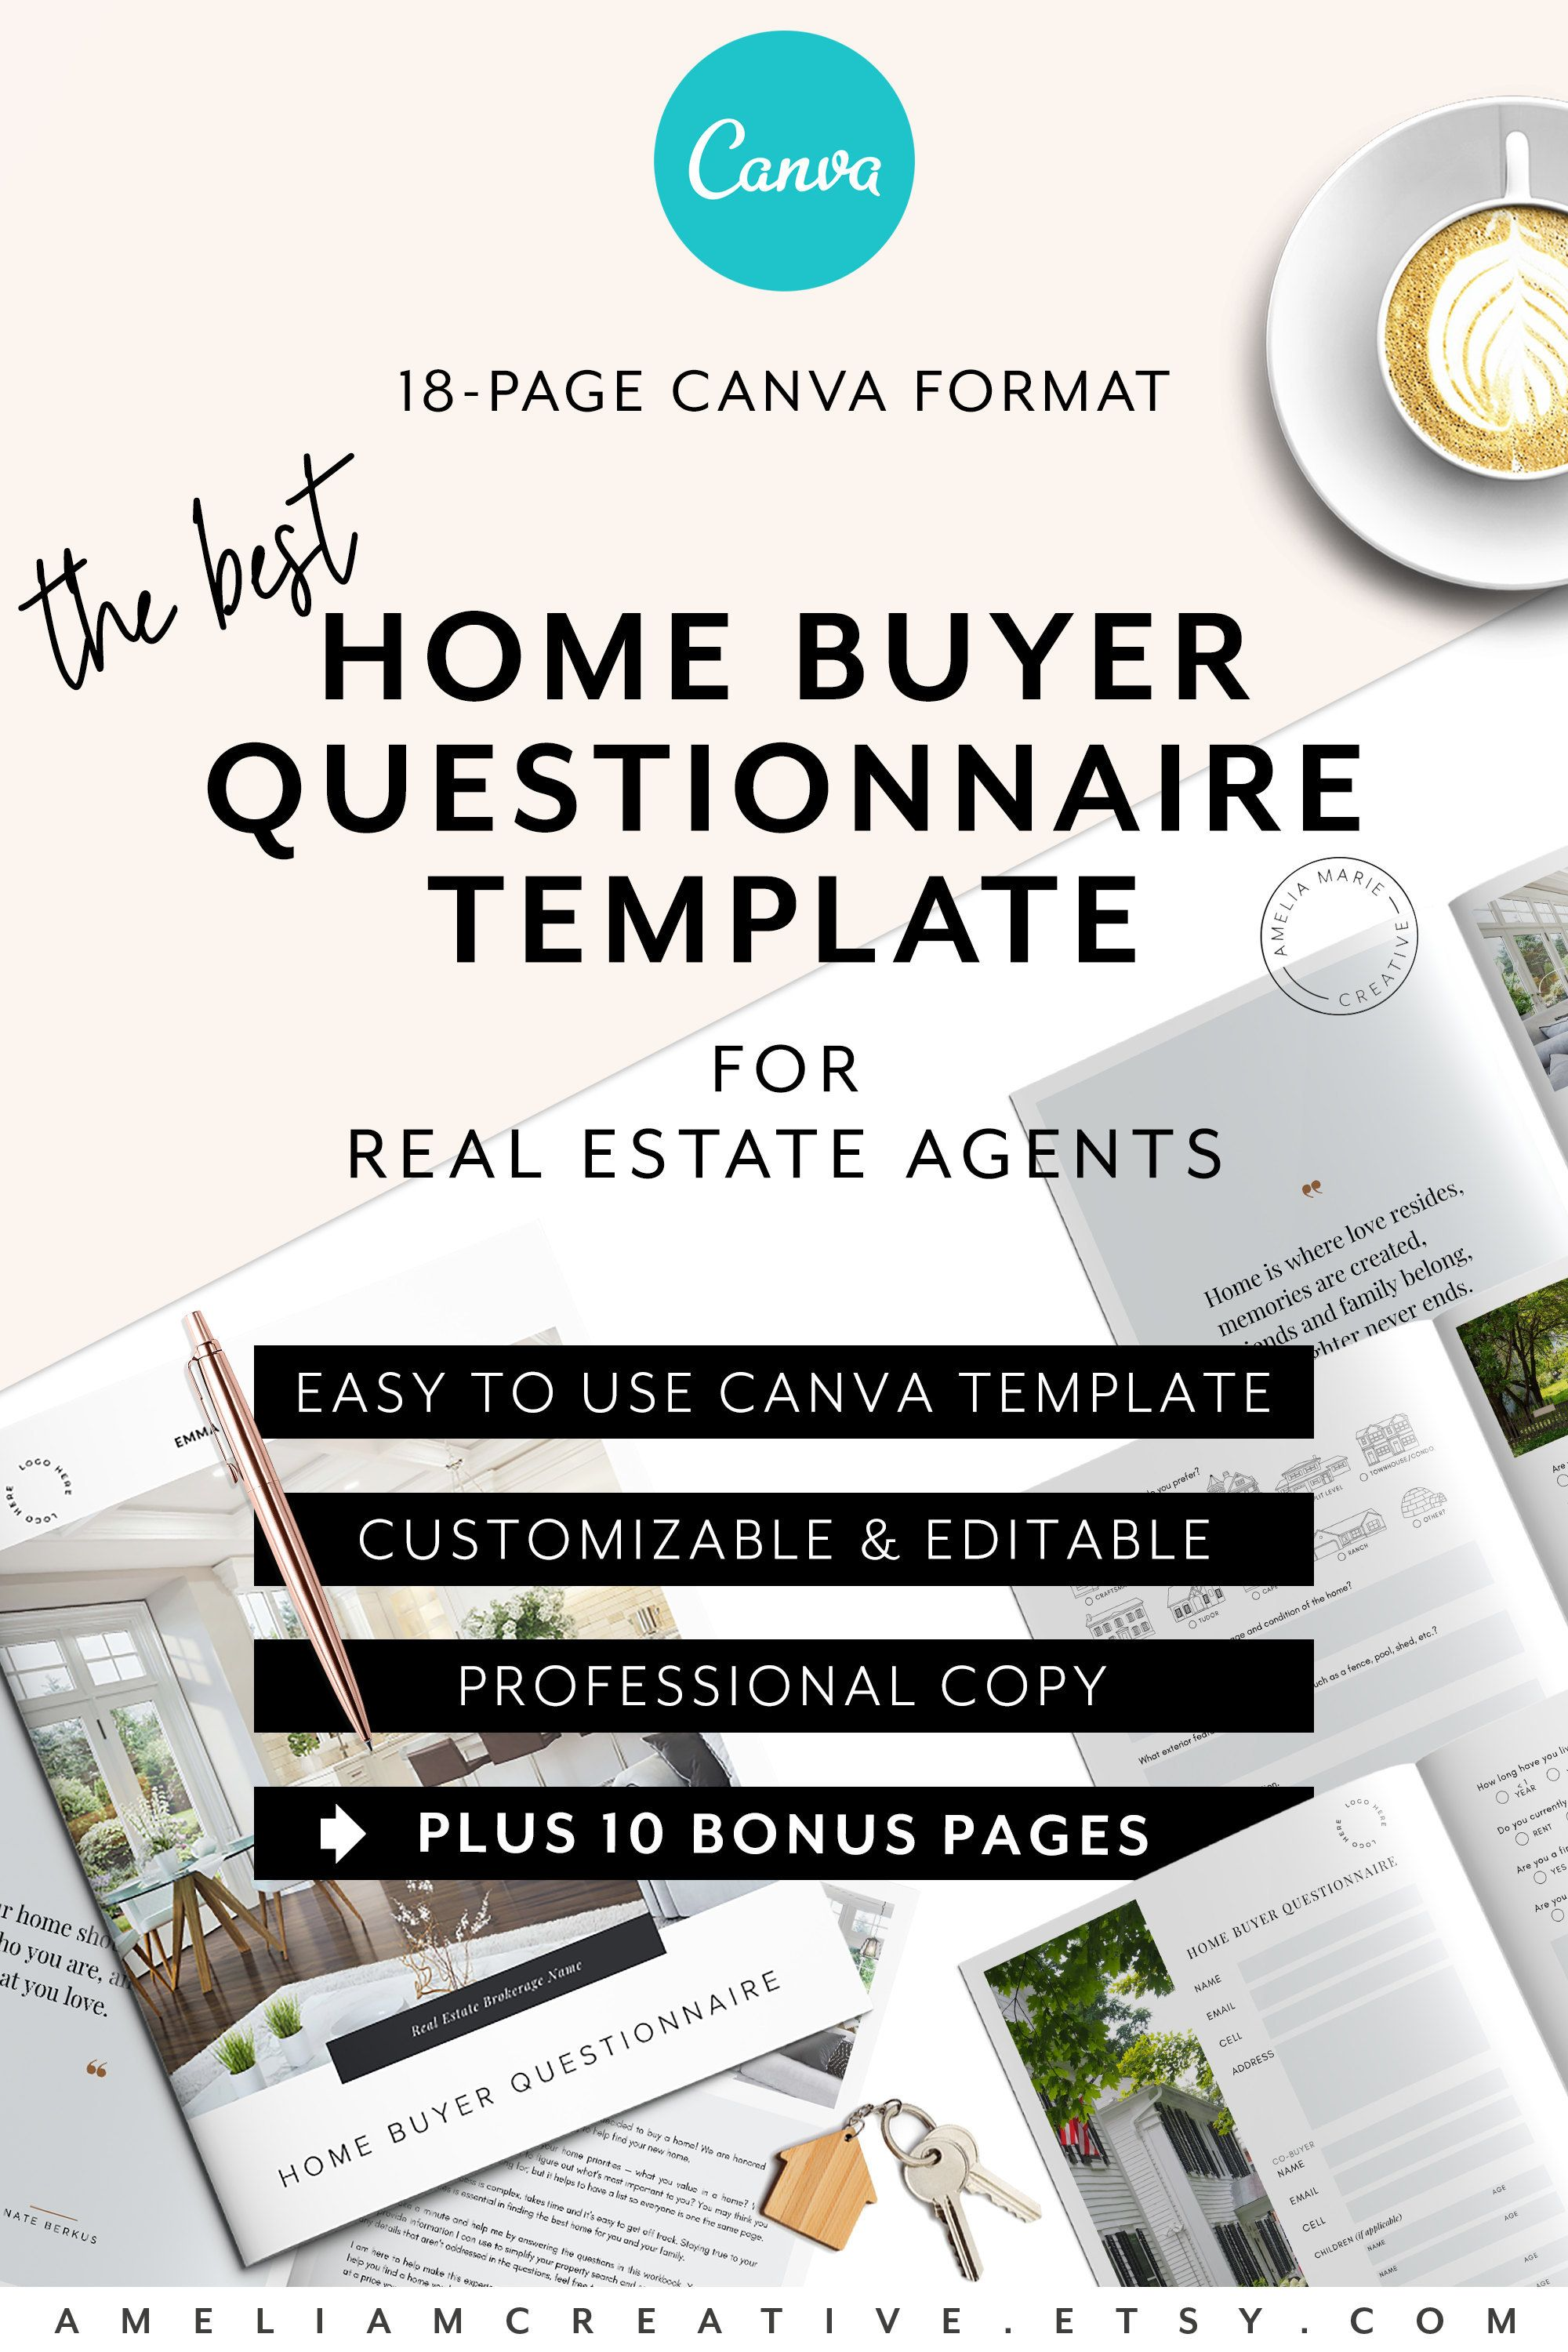 Home Buyer Questionnaire CANVA Template for Realtors®